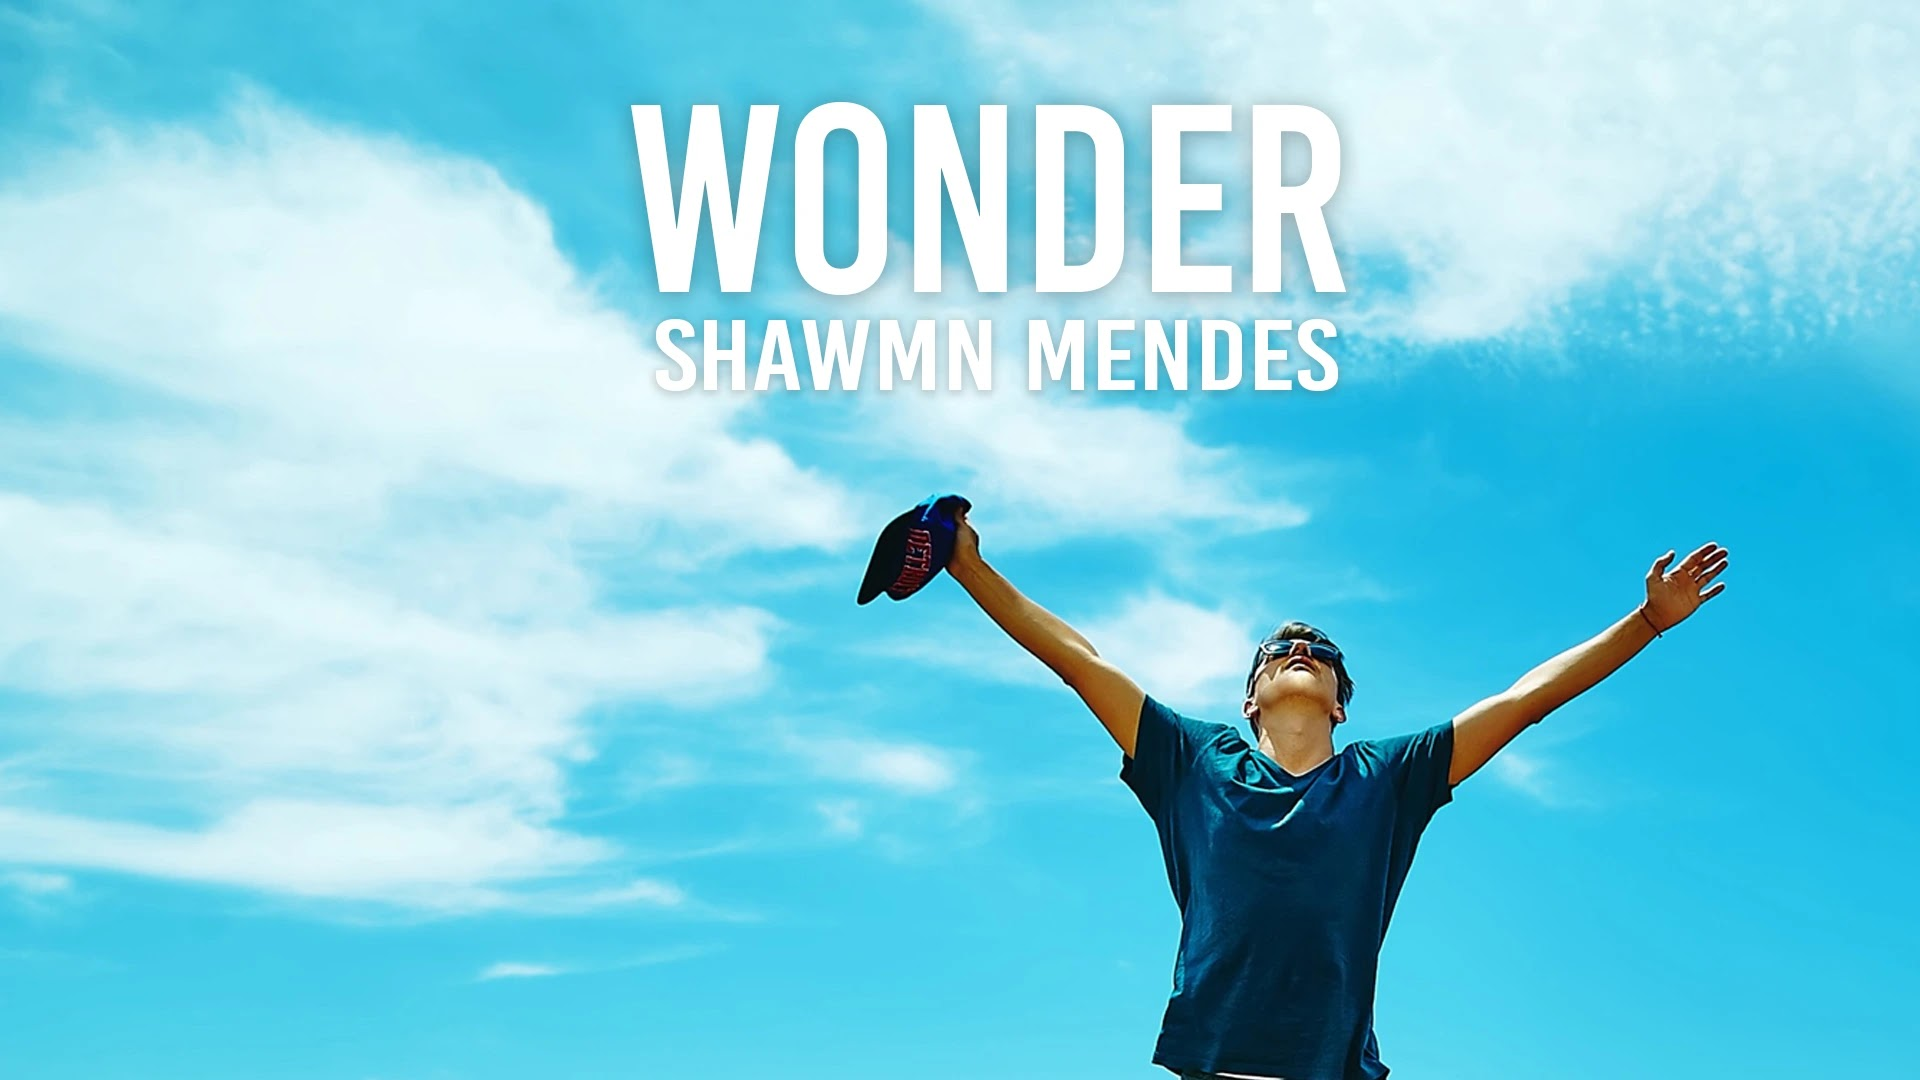 Wonder - Shawn Mendes Boy Open Arms